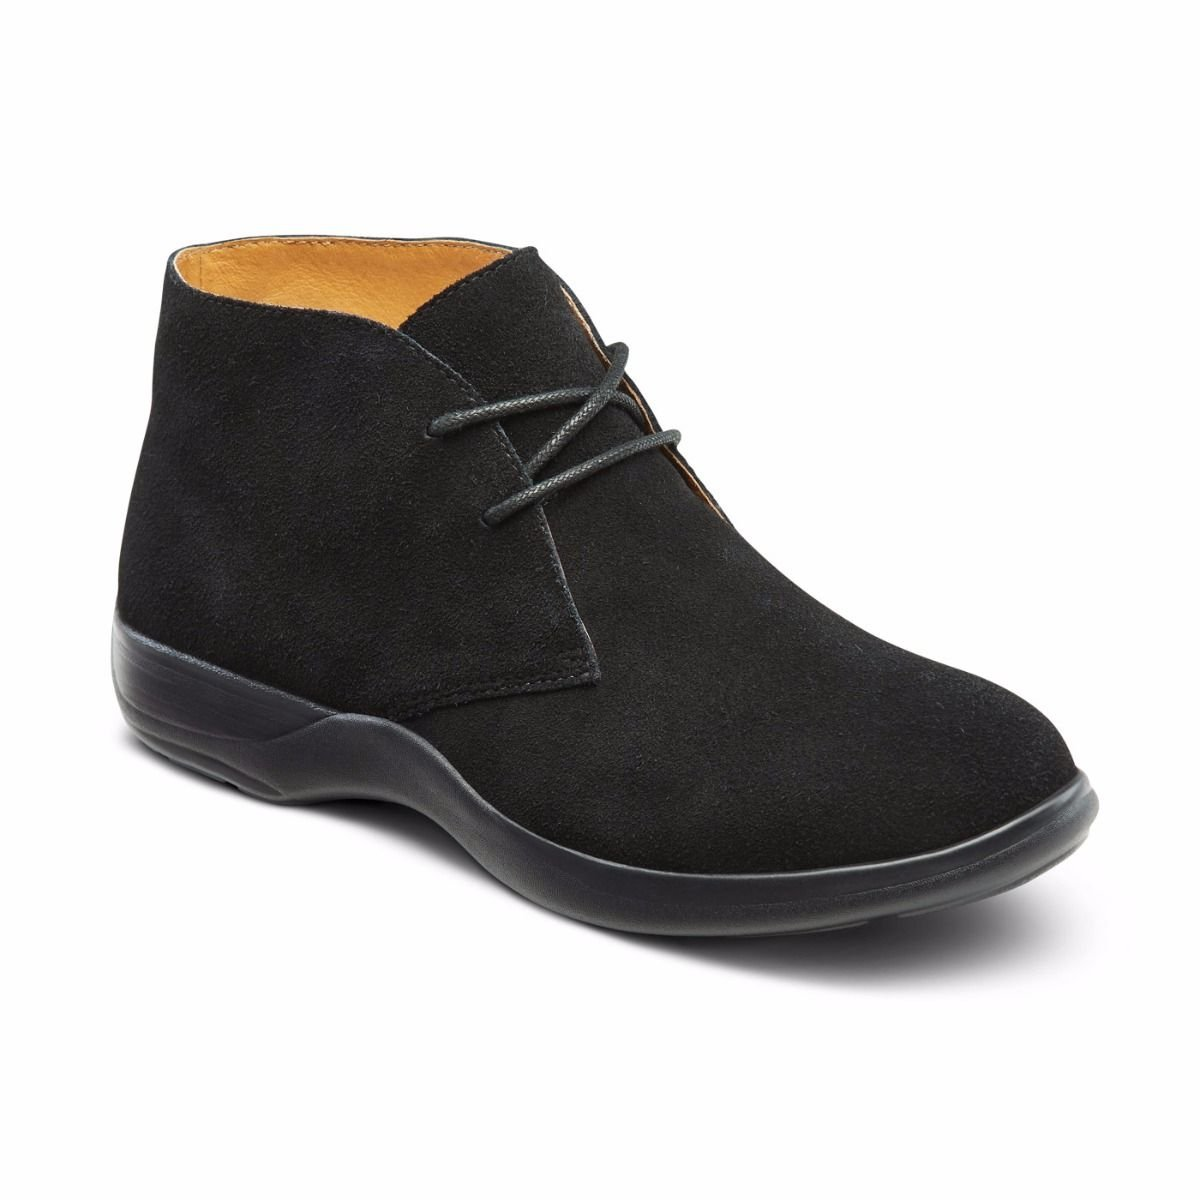 Dr. Comfort Women's Cara Casual Suede Leather Bootie Chukka Boot Black B074ZQMJSR 8 E US|Black